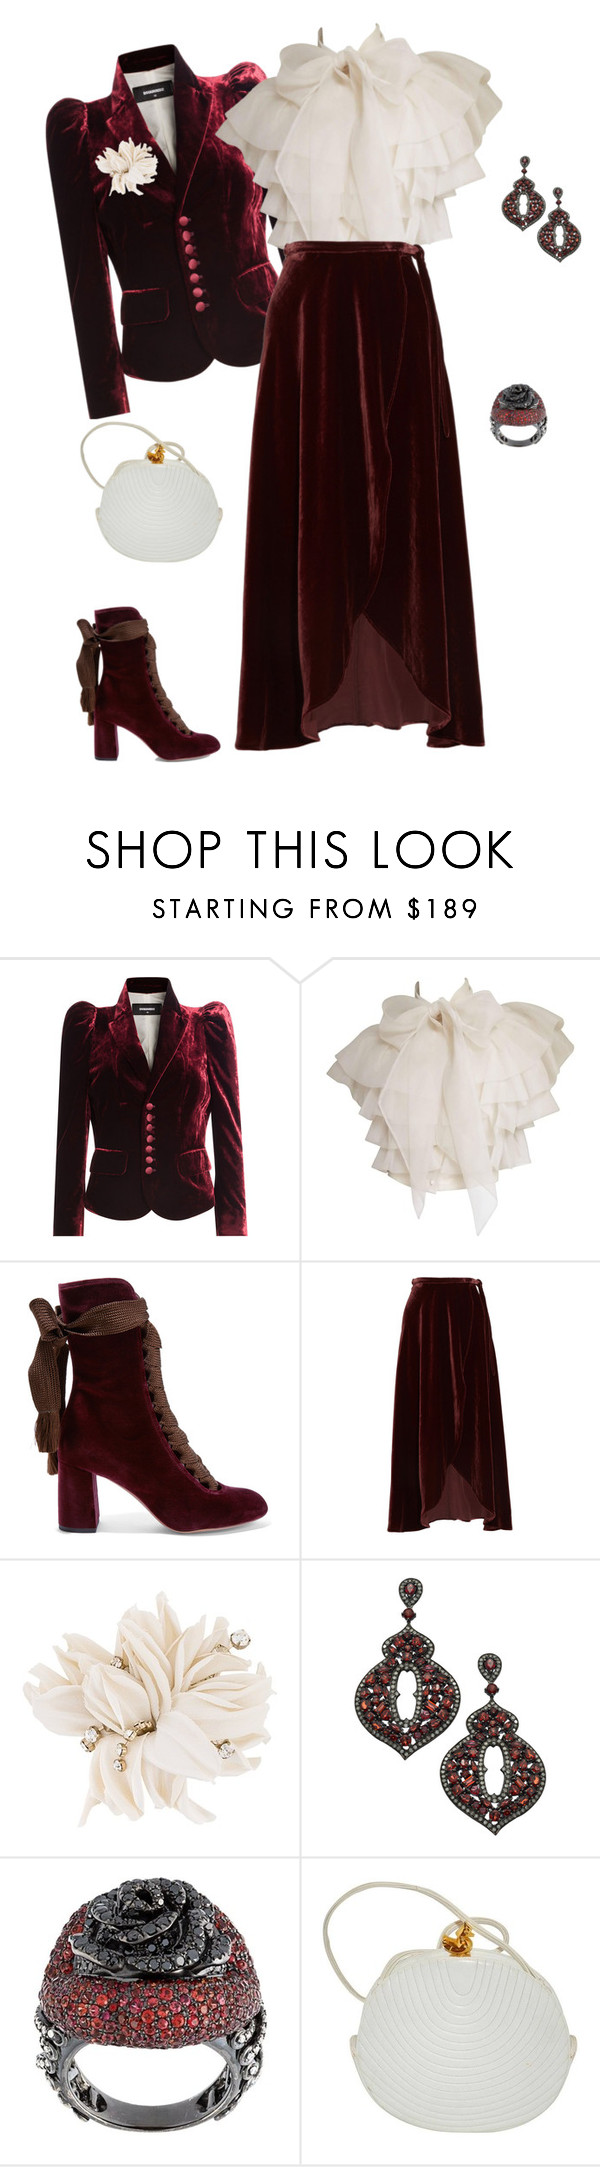 """""""outfit 5606"""" by natalyag ❤ liked on Polyvore featuring Dsquared2, Chloé, Reformation, Erika Cavallini Semi-Couture, Divya Diamond, Lydia Courteille and vintage"""